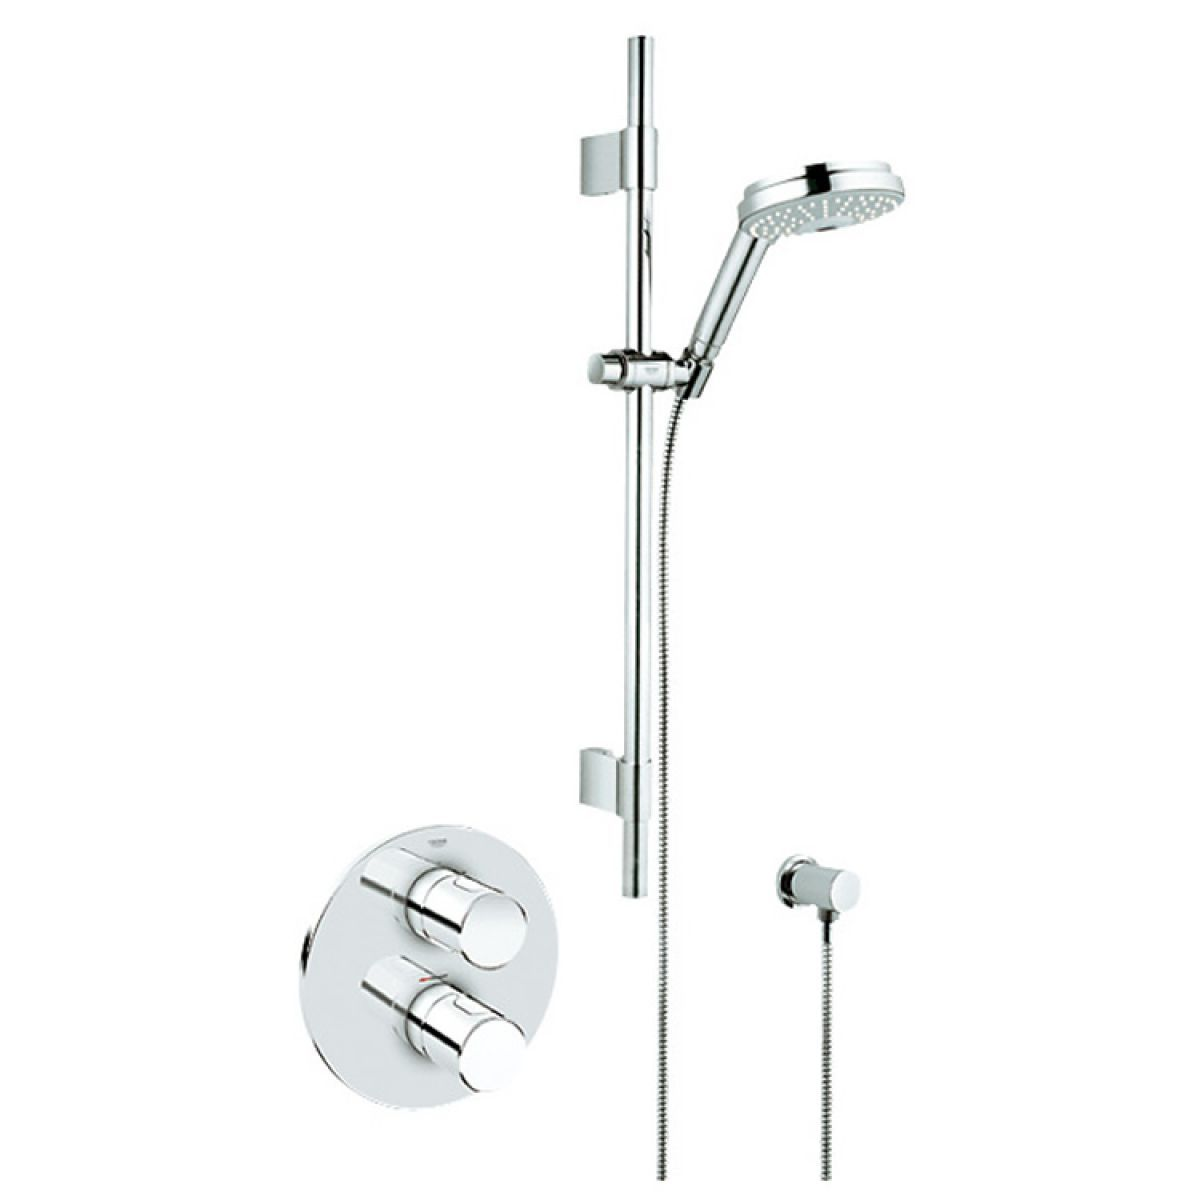 Best Of Grohe Shower Bar soap Dish